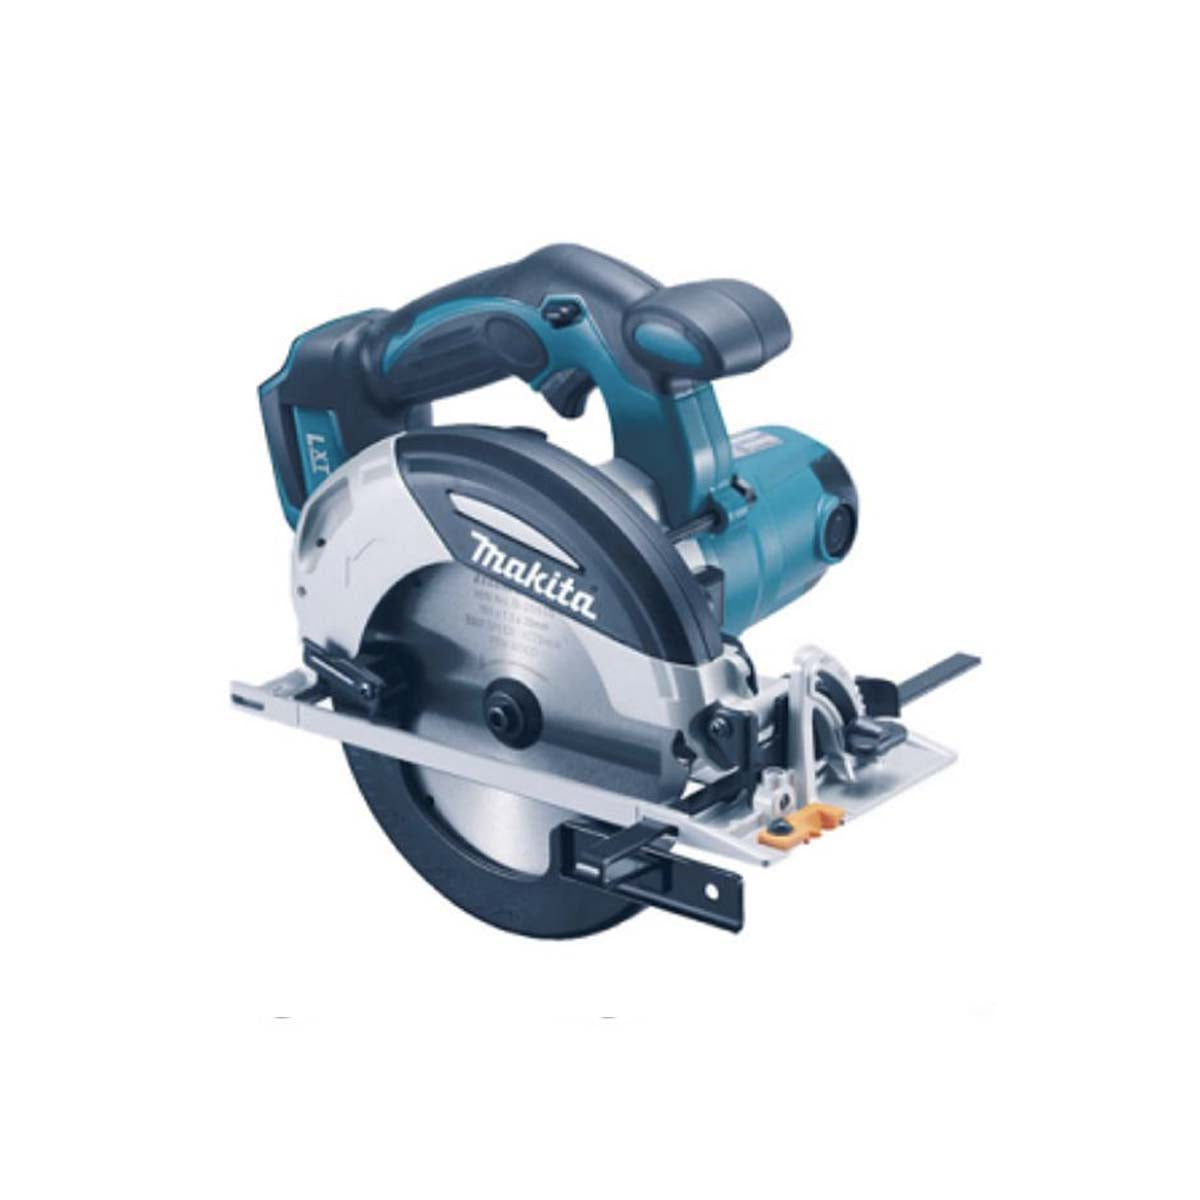 Makita Cordless Circular Saw 18V - Bare Unit (DHS630Z)